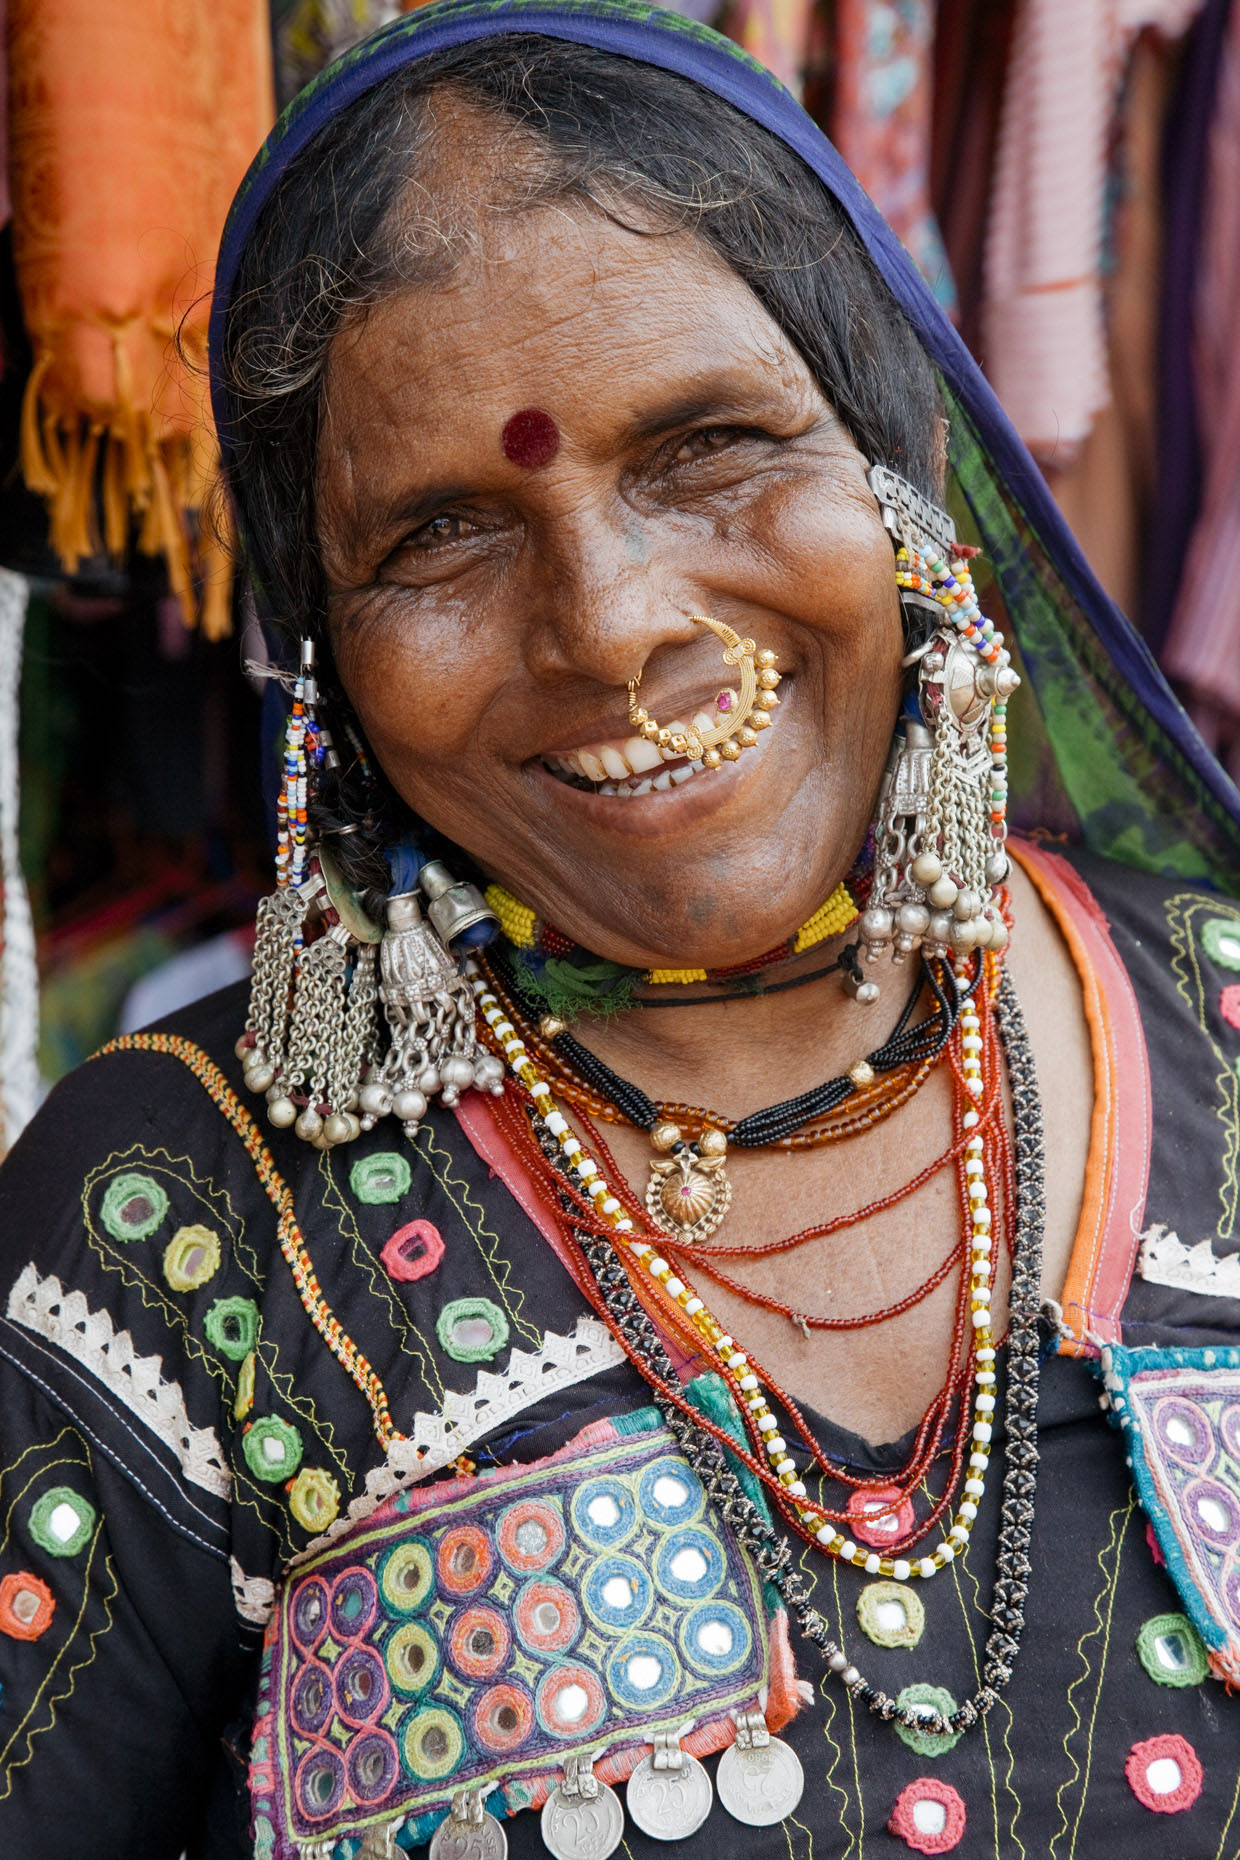 Inti St Clair photo of woman with bright clothes and bold jewelry laughing in Goa India